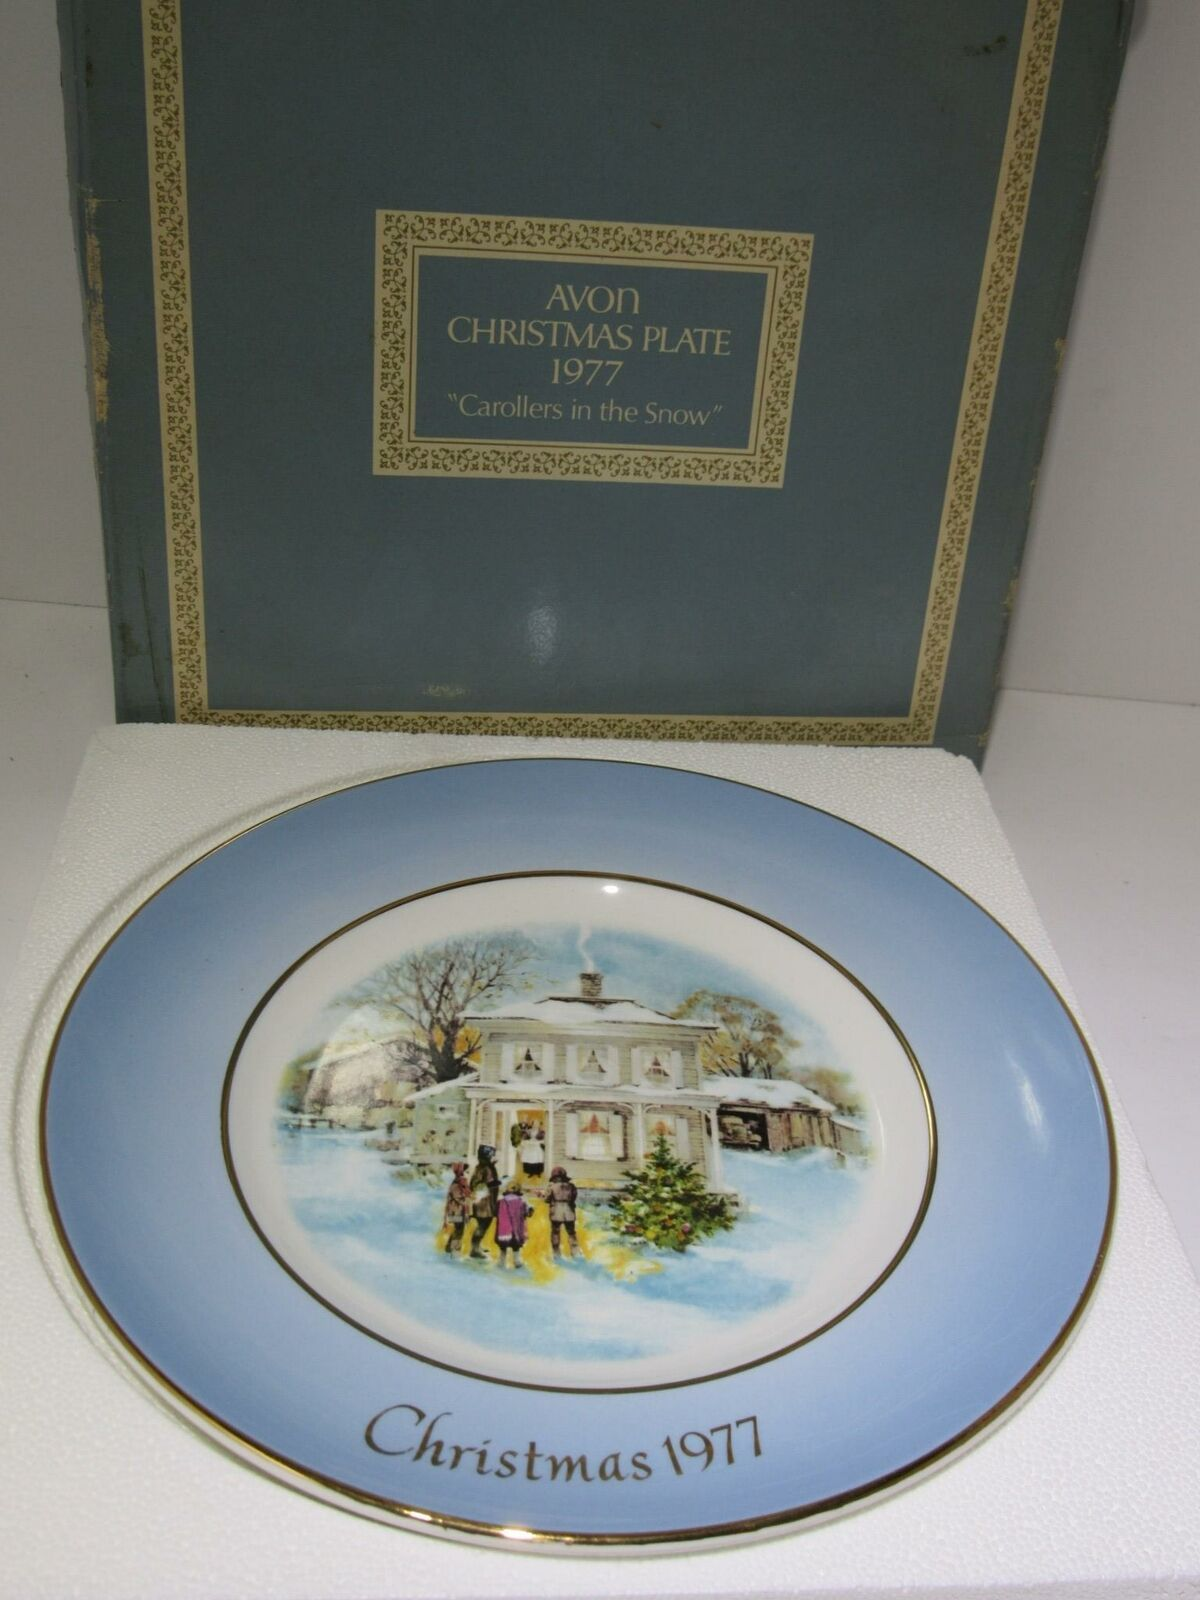 1977 Avon Christmas Plate Series Fifth Edition Carollers in the Snow in Box vtg